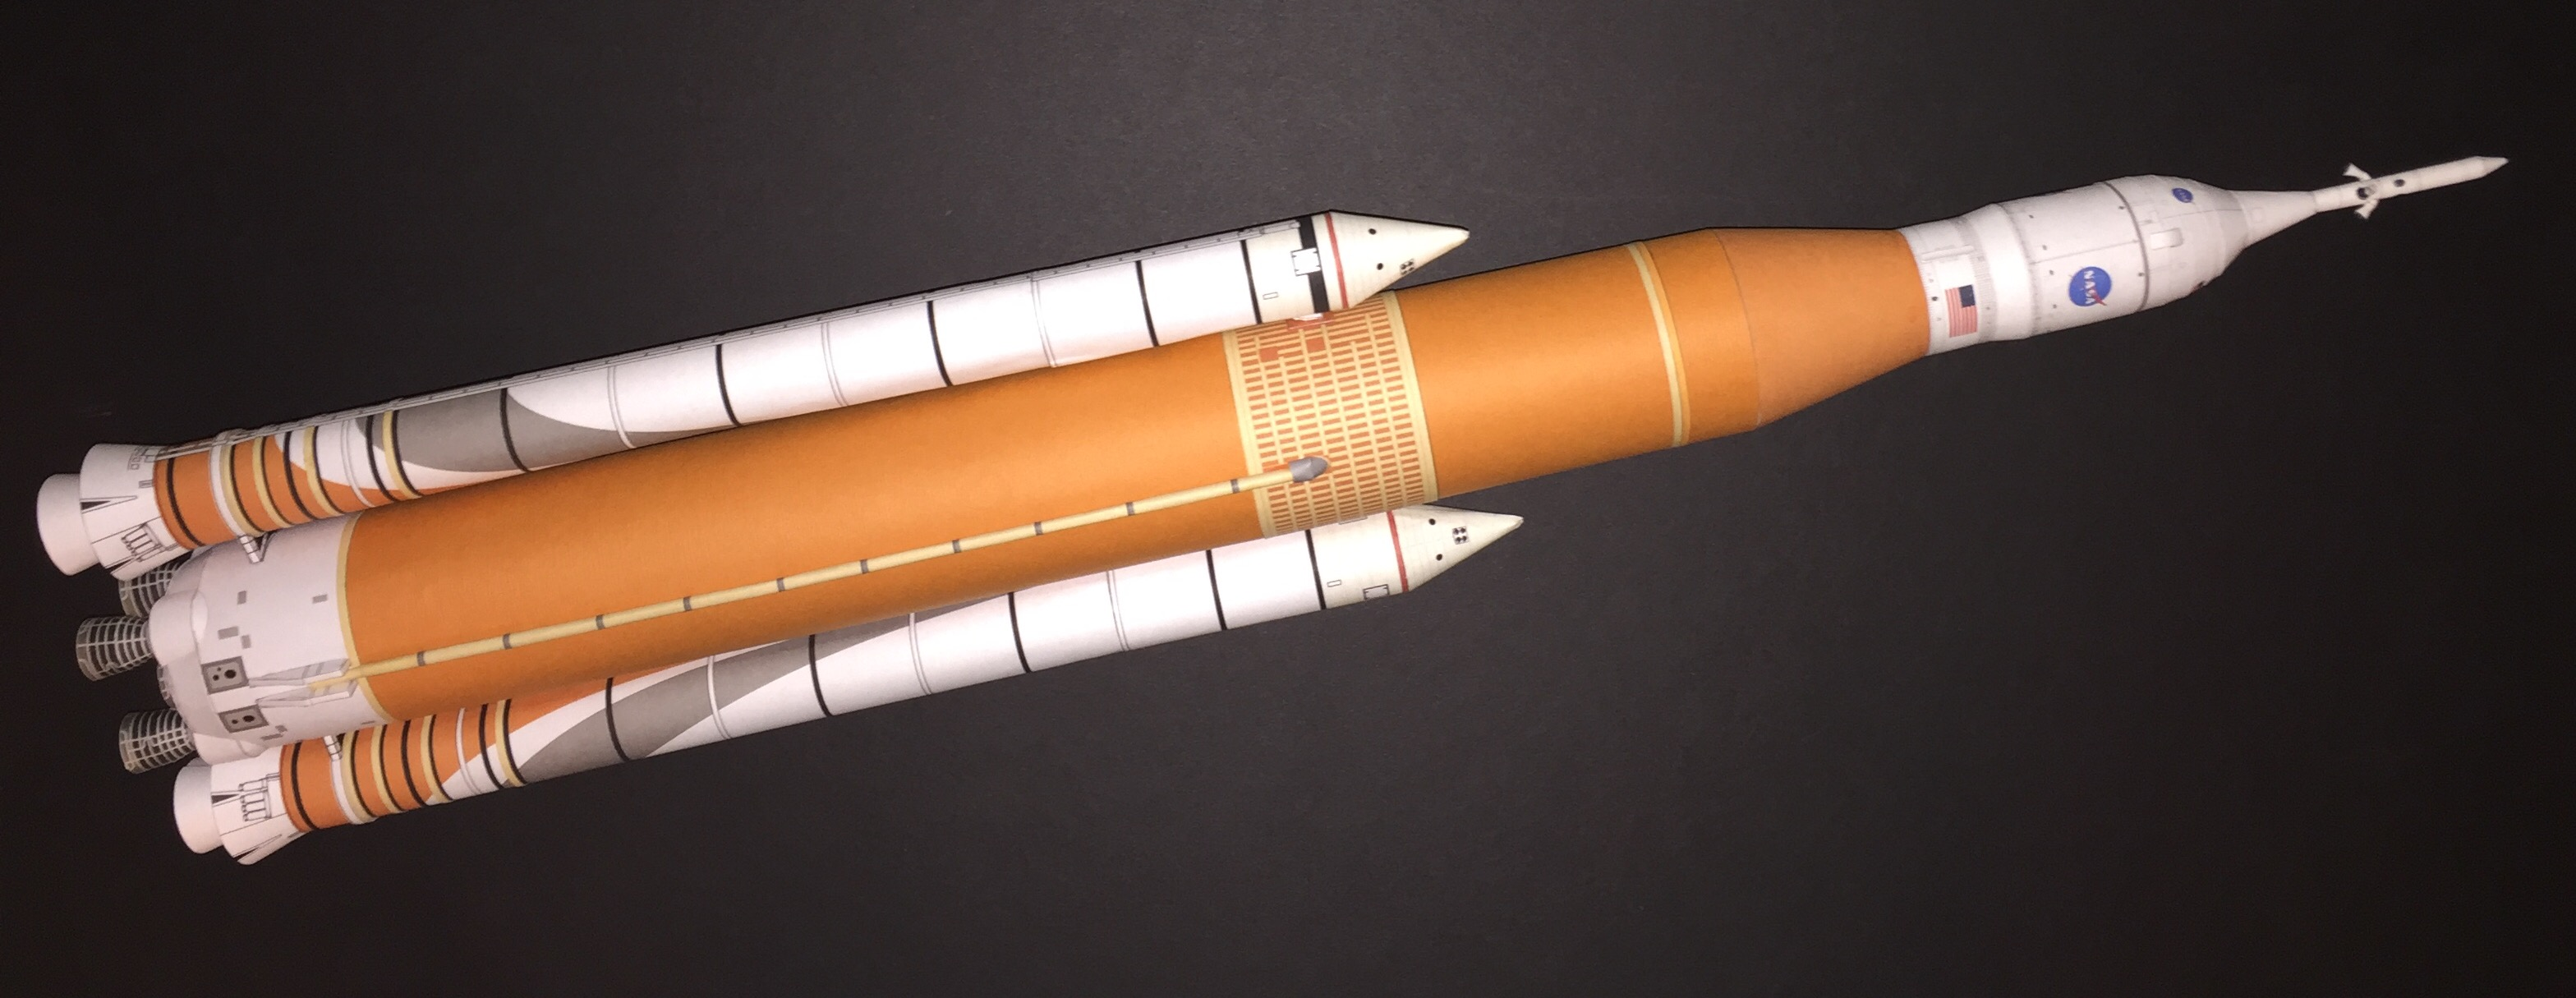 AXM Paper Space Scale Models.com - Space Shuttles, ISS and ...